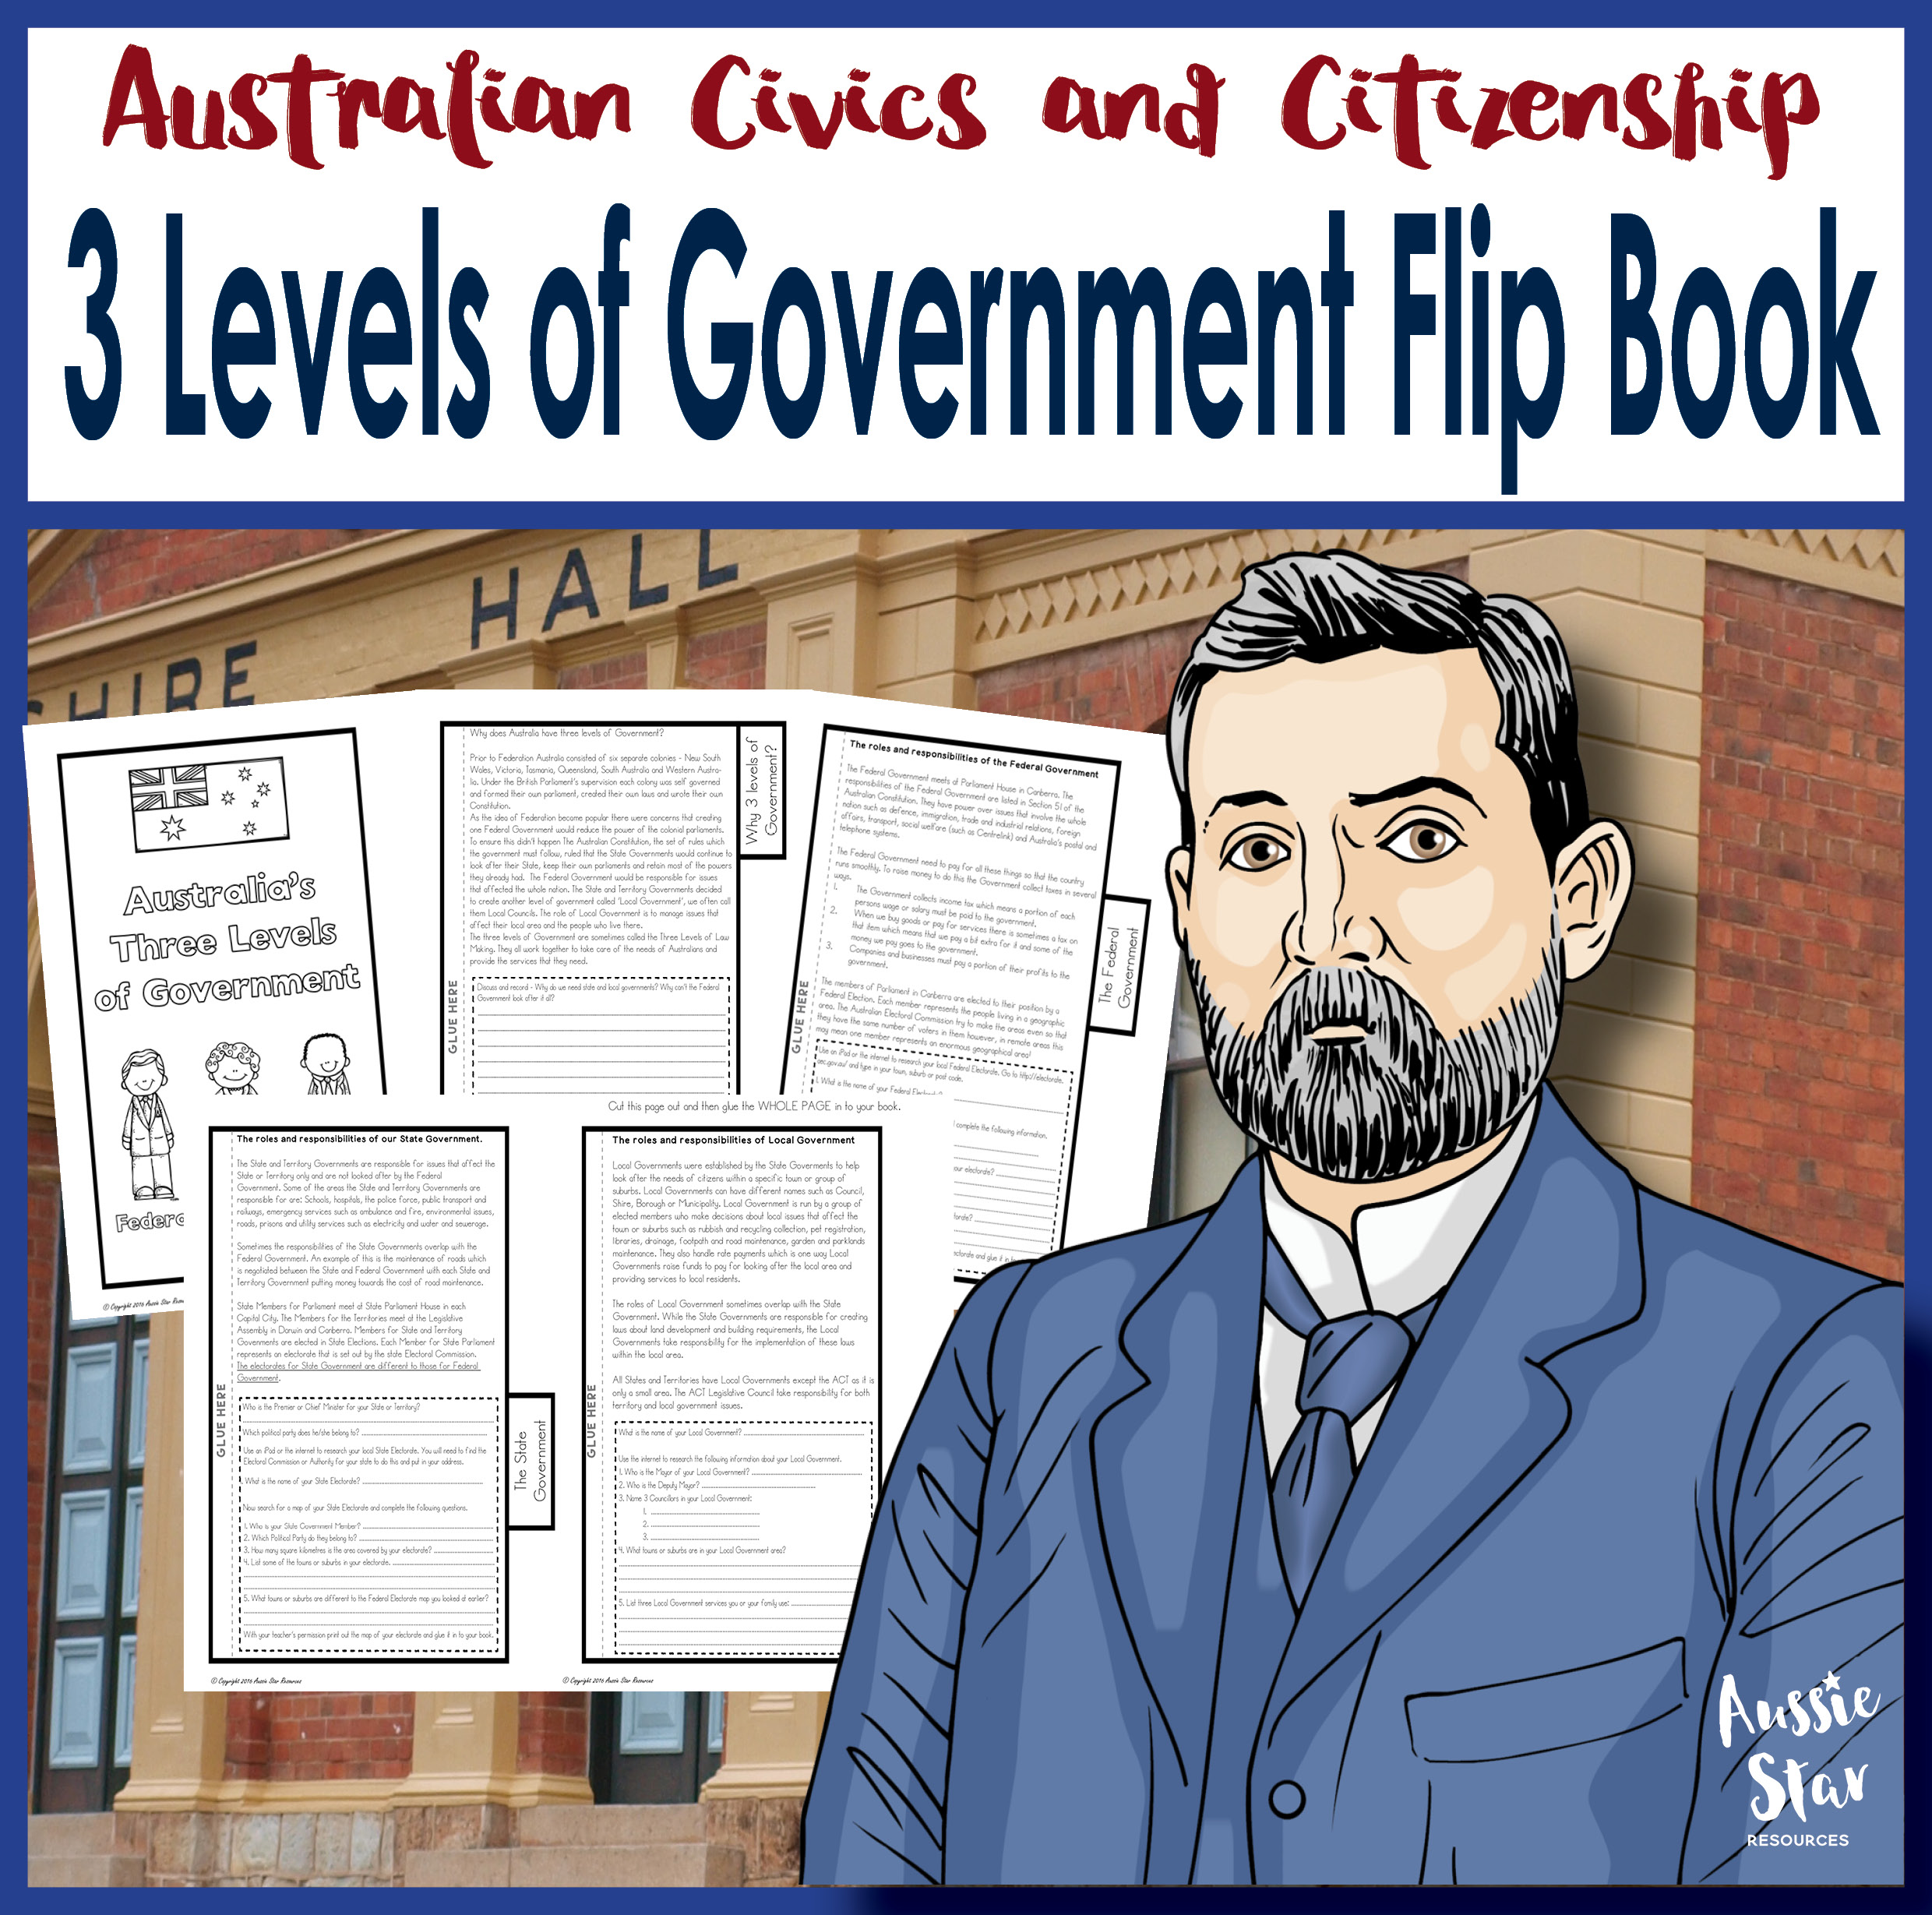 3 levels of government flip book